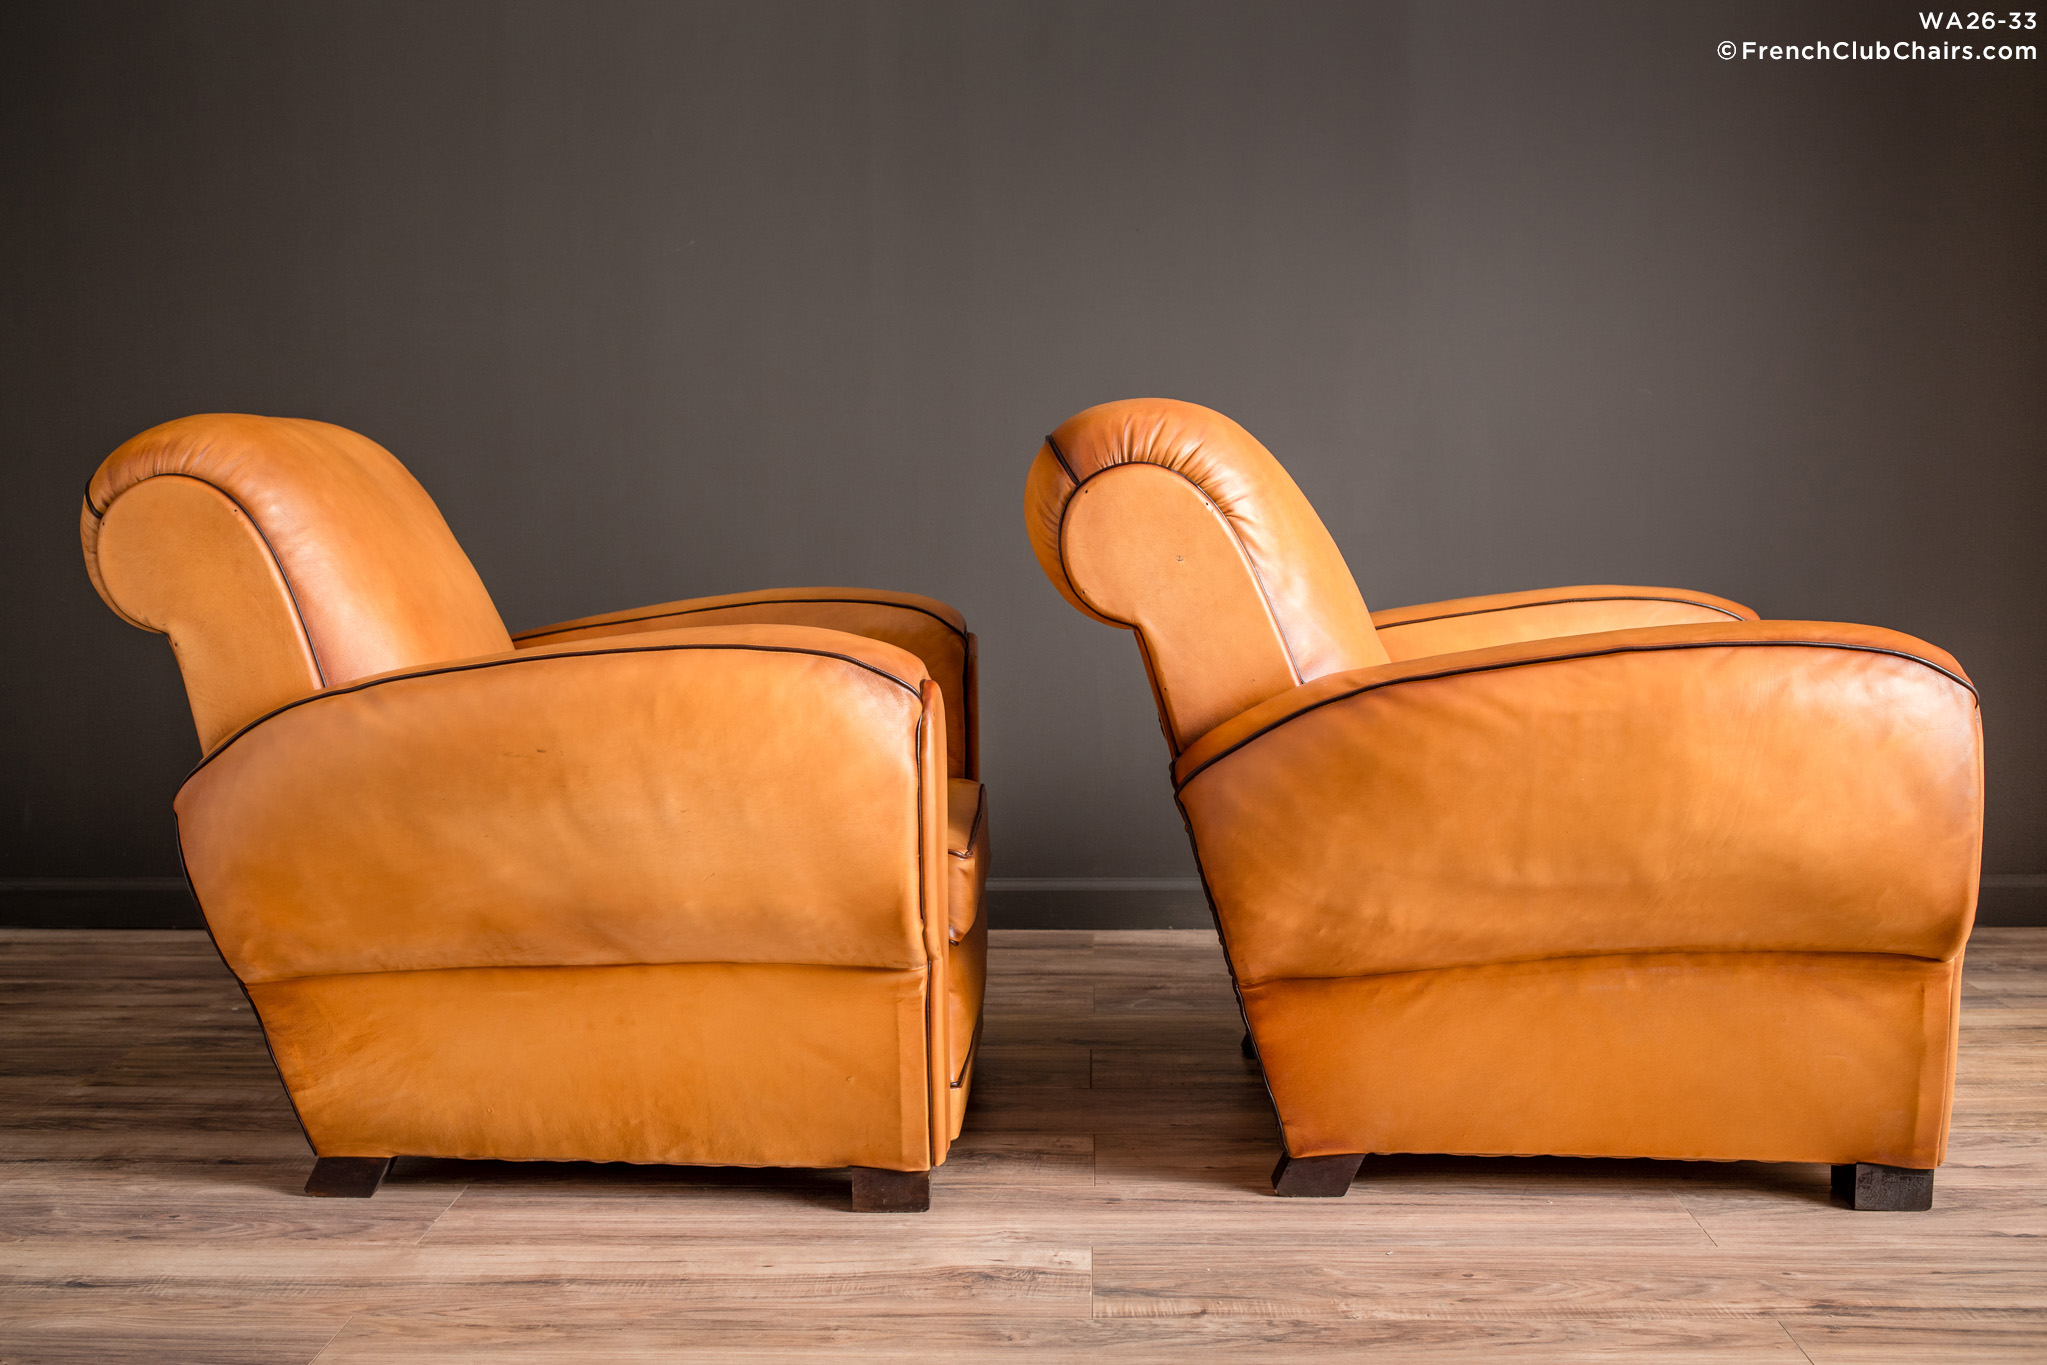 WA_26-33_Rambouillet_Rollback_Pair_R_3RT-v01-williams-antiks-leather-french-club-chair-wa_fcccom